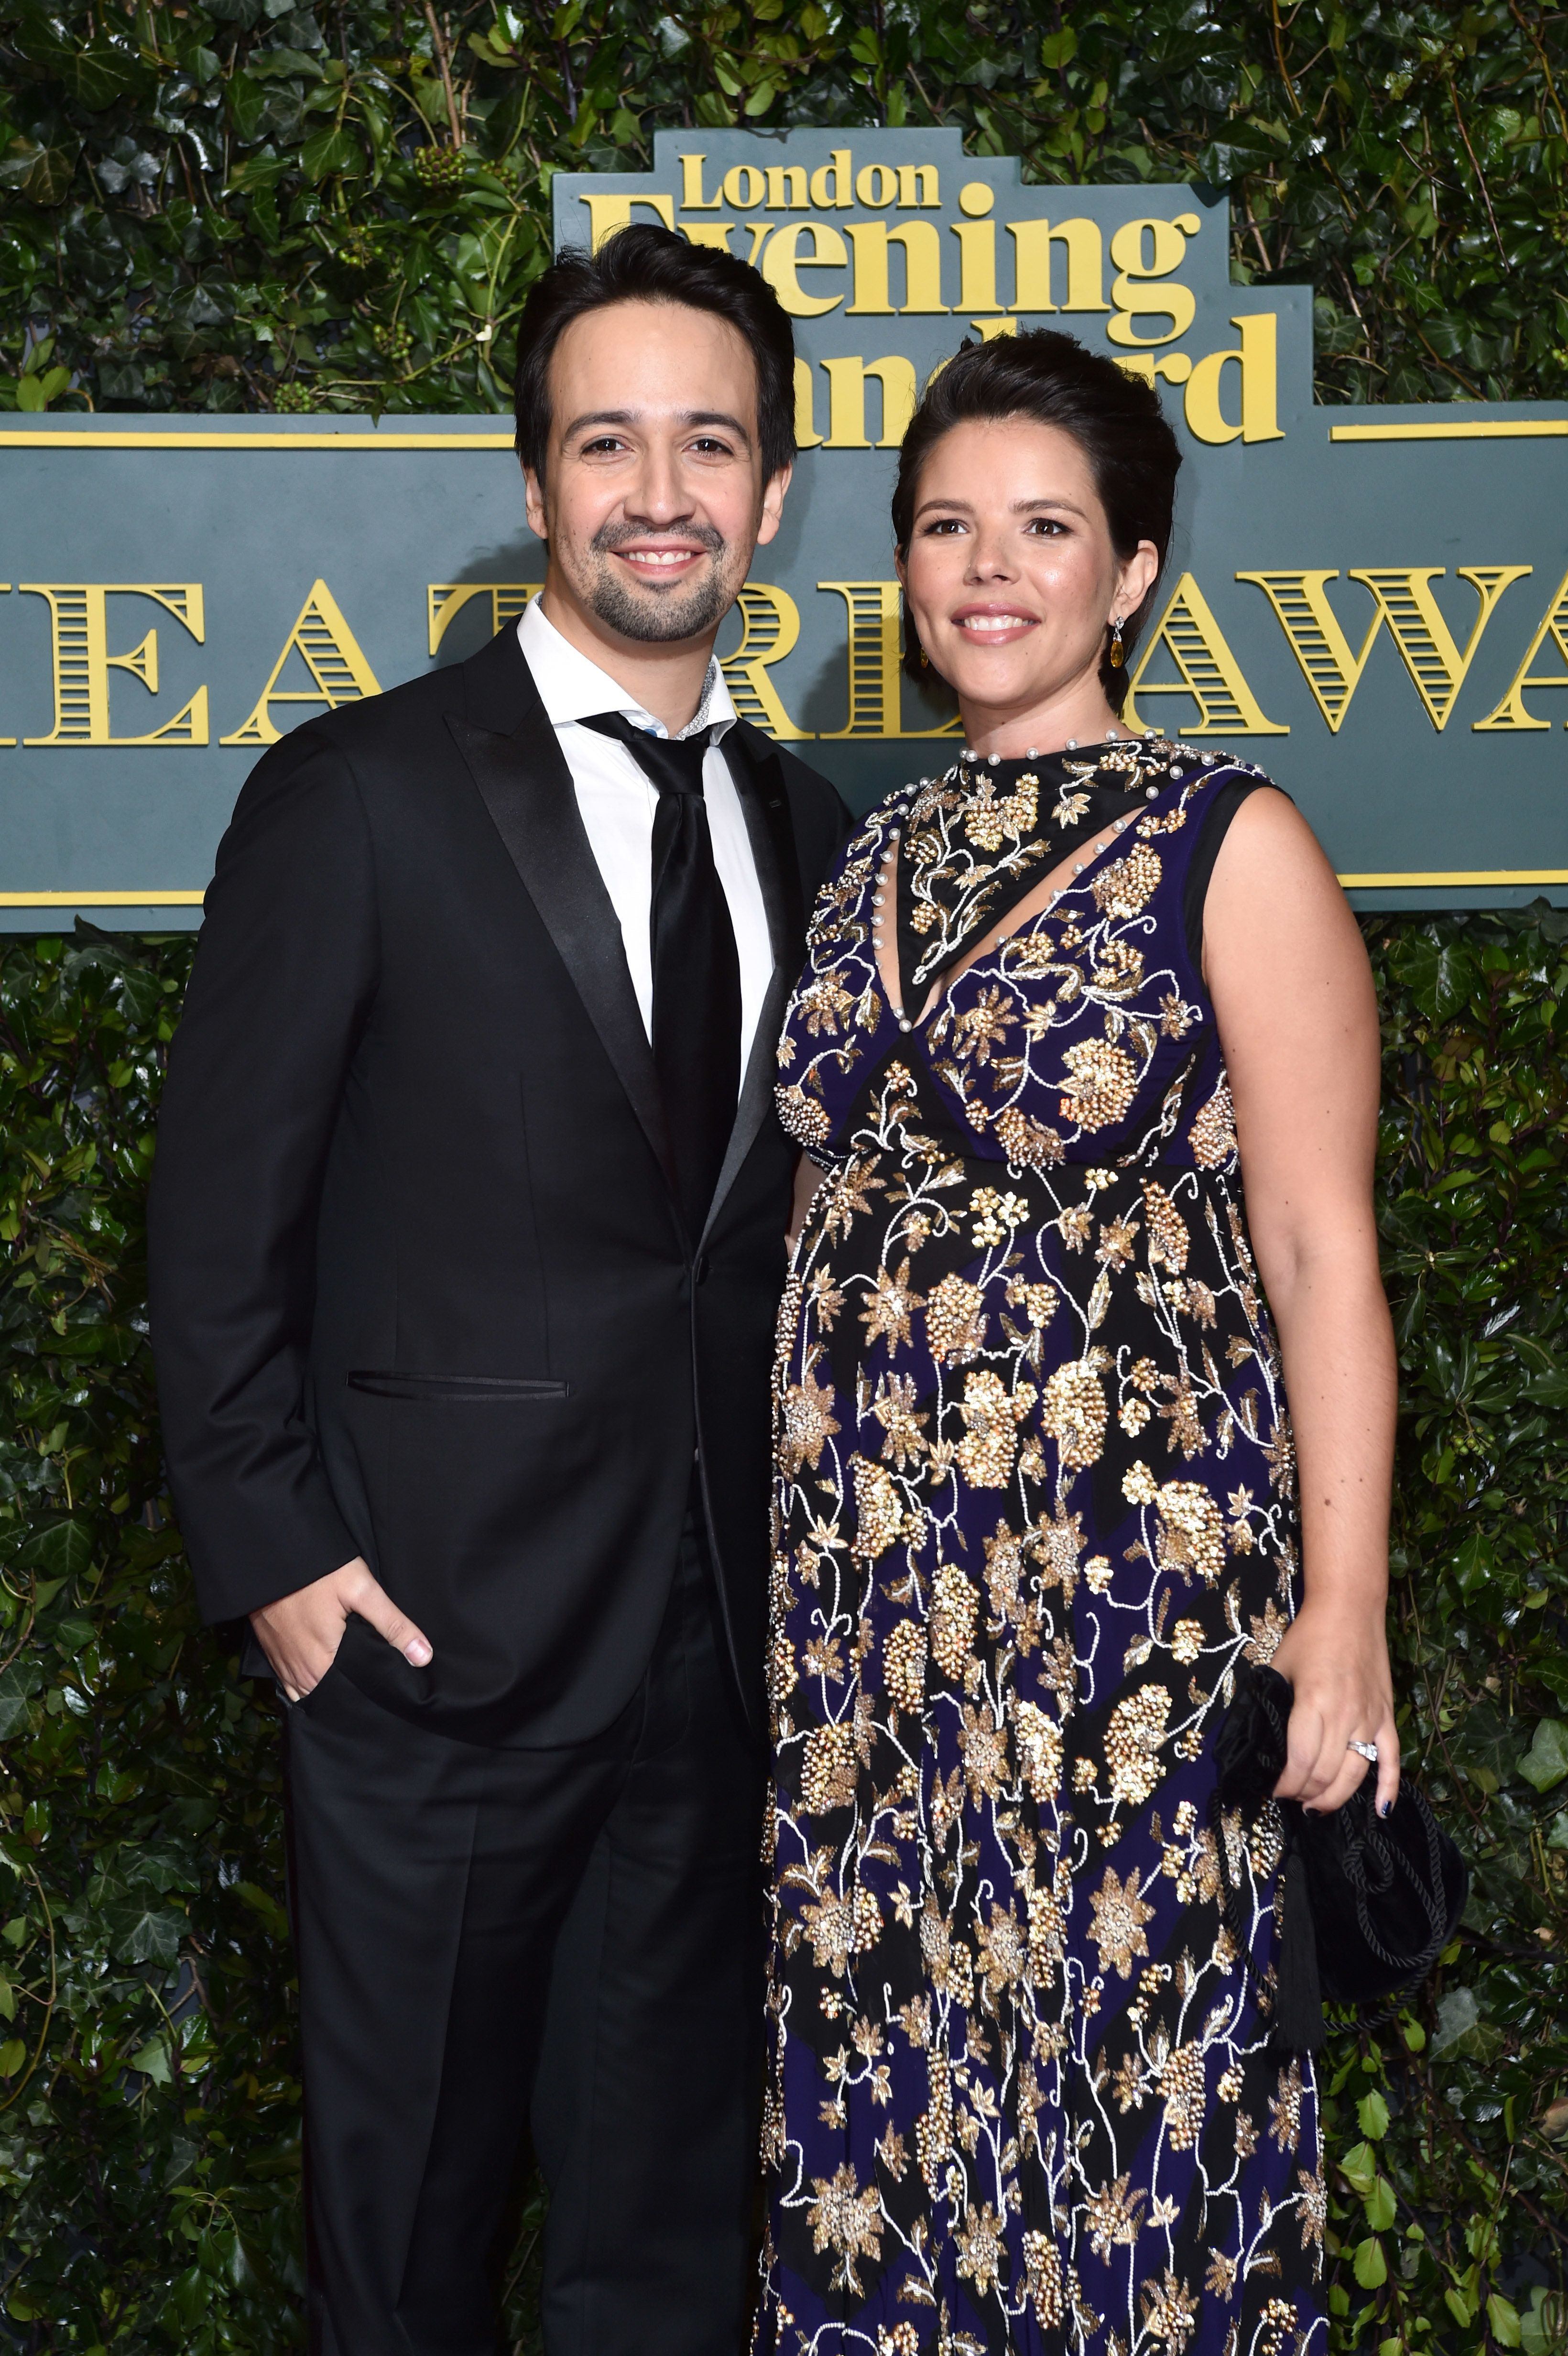 Lin-Manuel Miranda and Vanessa Nadal attending the Evening Standard Theatre Awards, at the Theatre Royal in London. PRESS ASSOCIATION Photo. Picture date: Sunday December 3rd, 2016. Photo credit should read: Matt Crossick/PA Wire.  (Photo by Matt Crossick/PA Images via Getty Images)